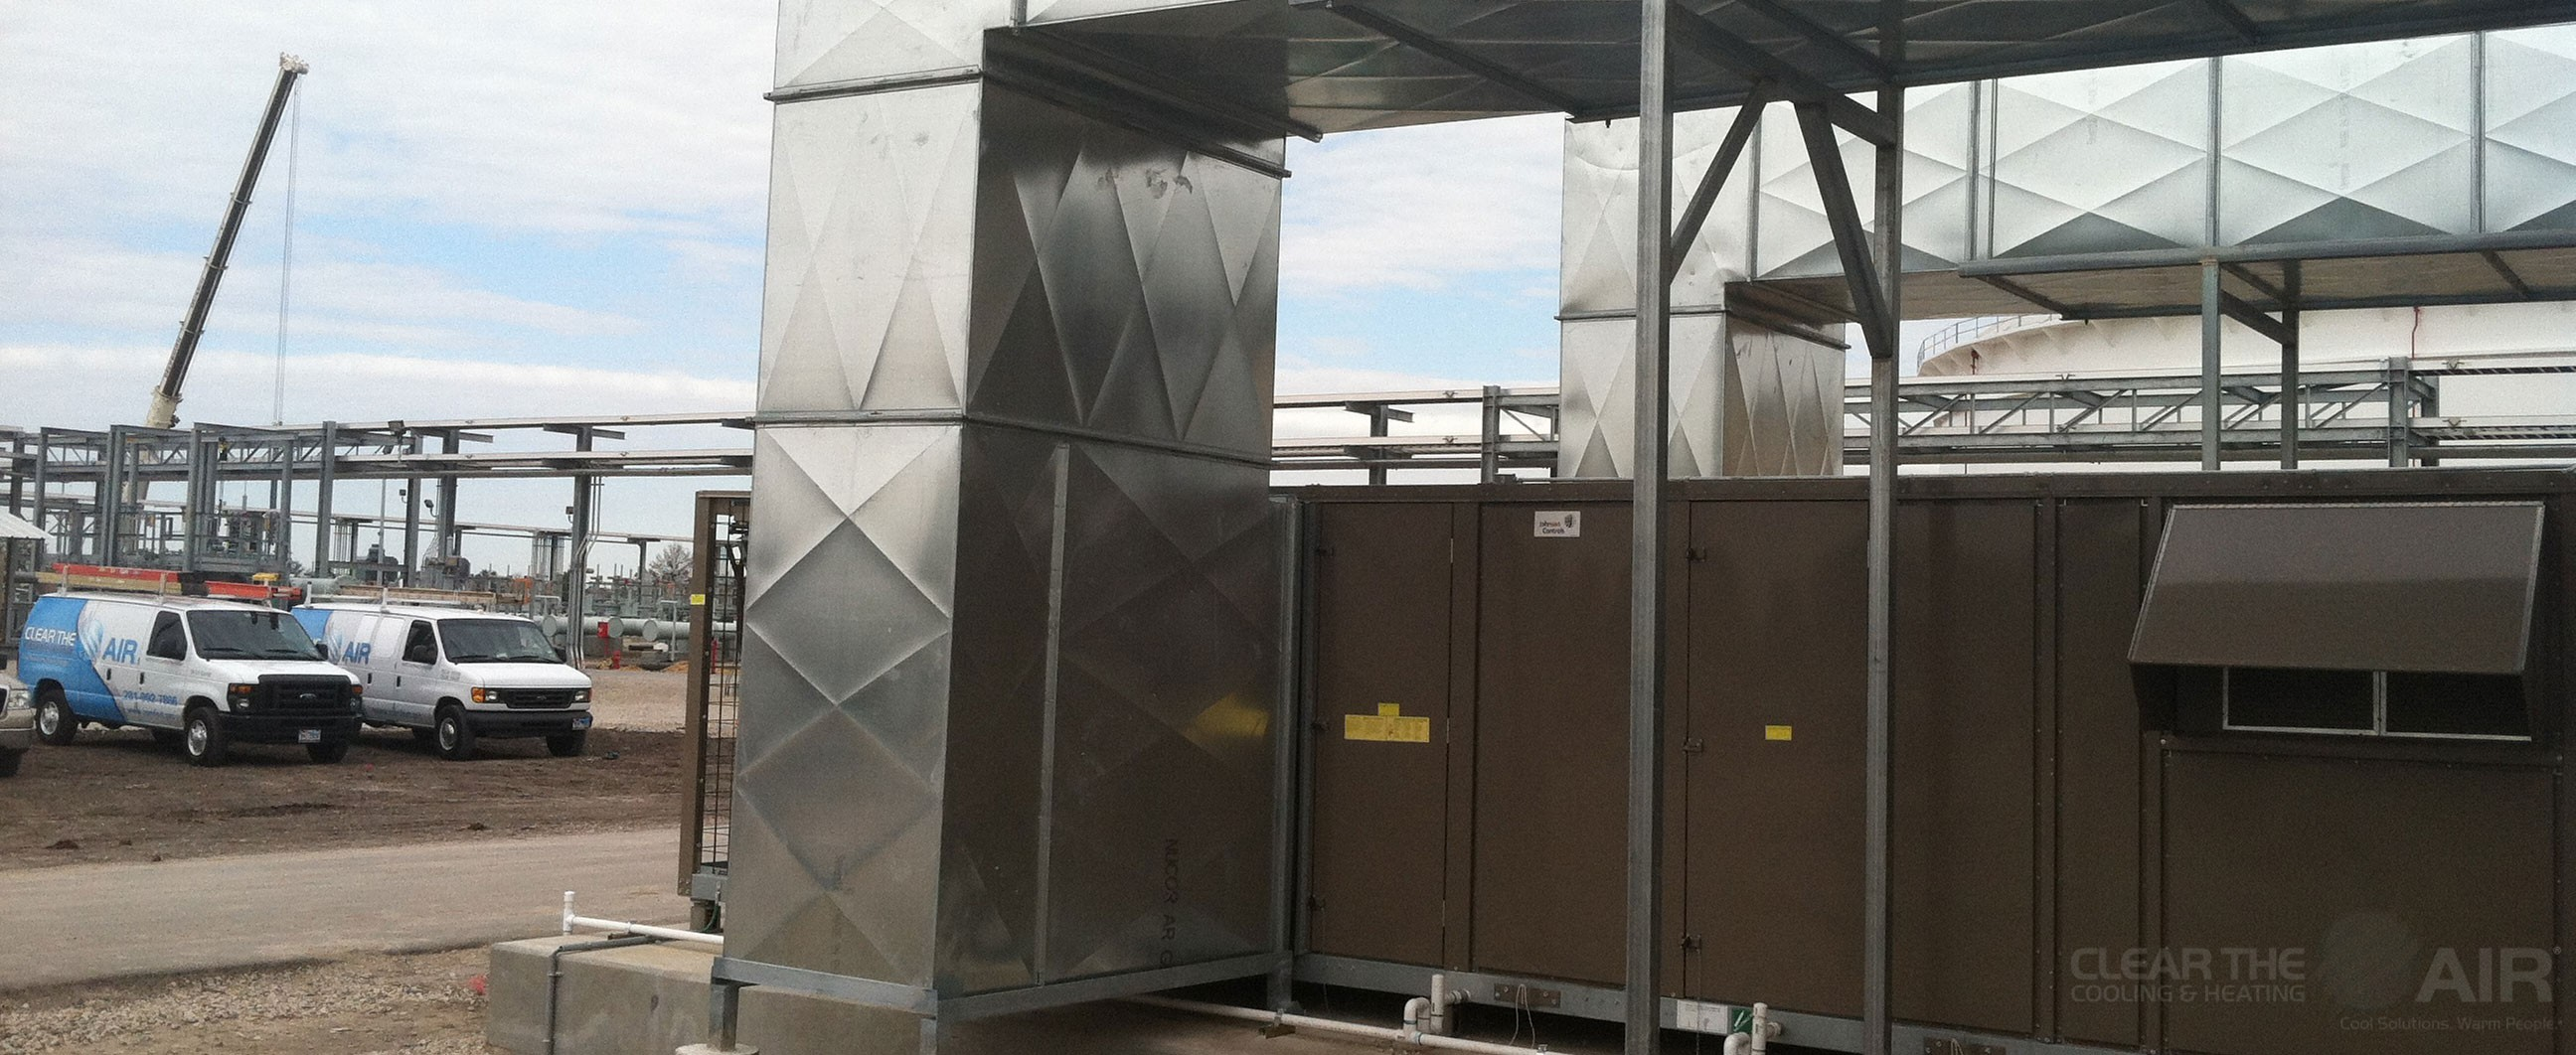 commercial air conditioning services houston tx